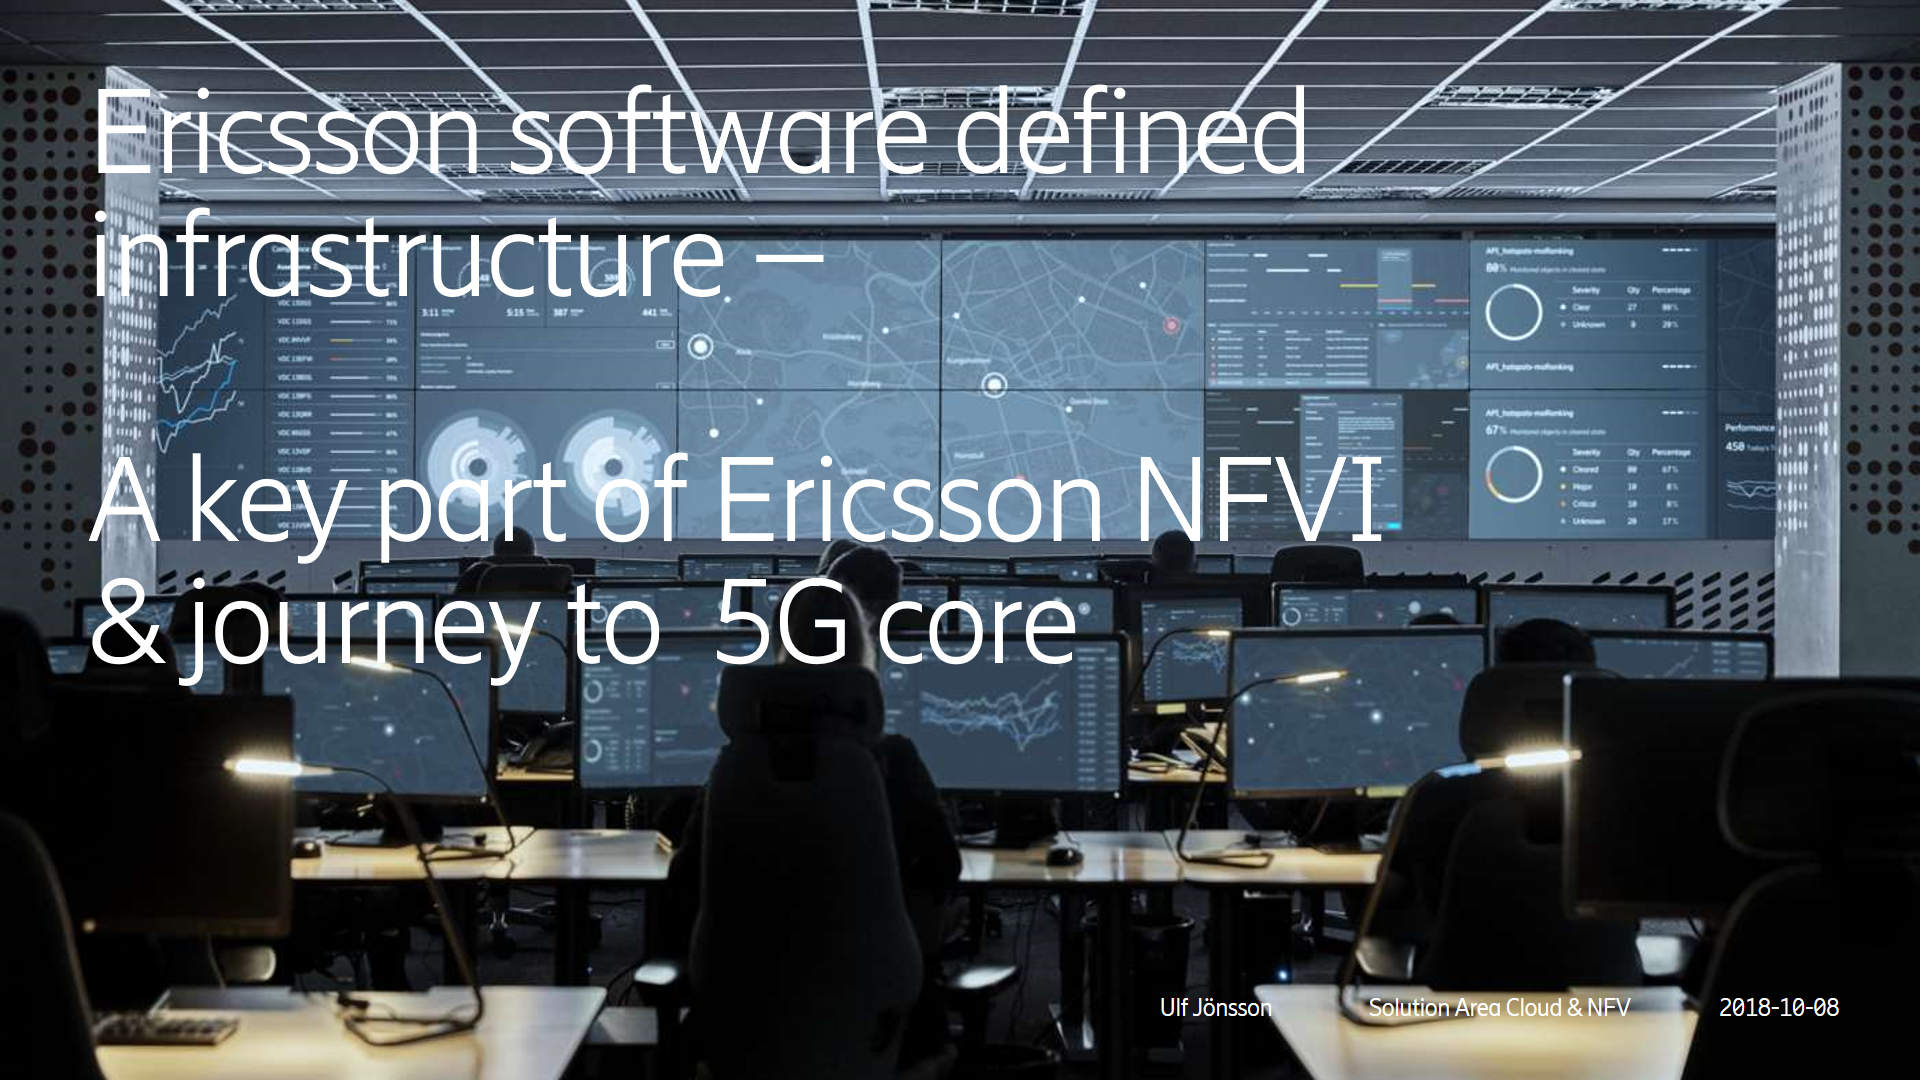 Ericsson software defined infrastructure